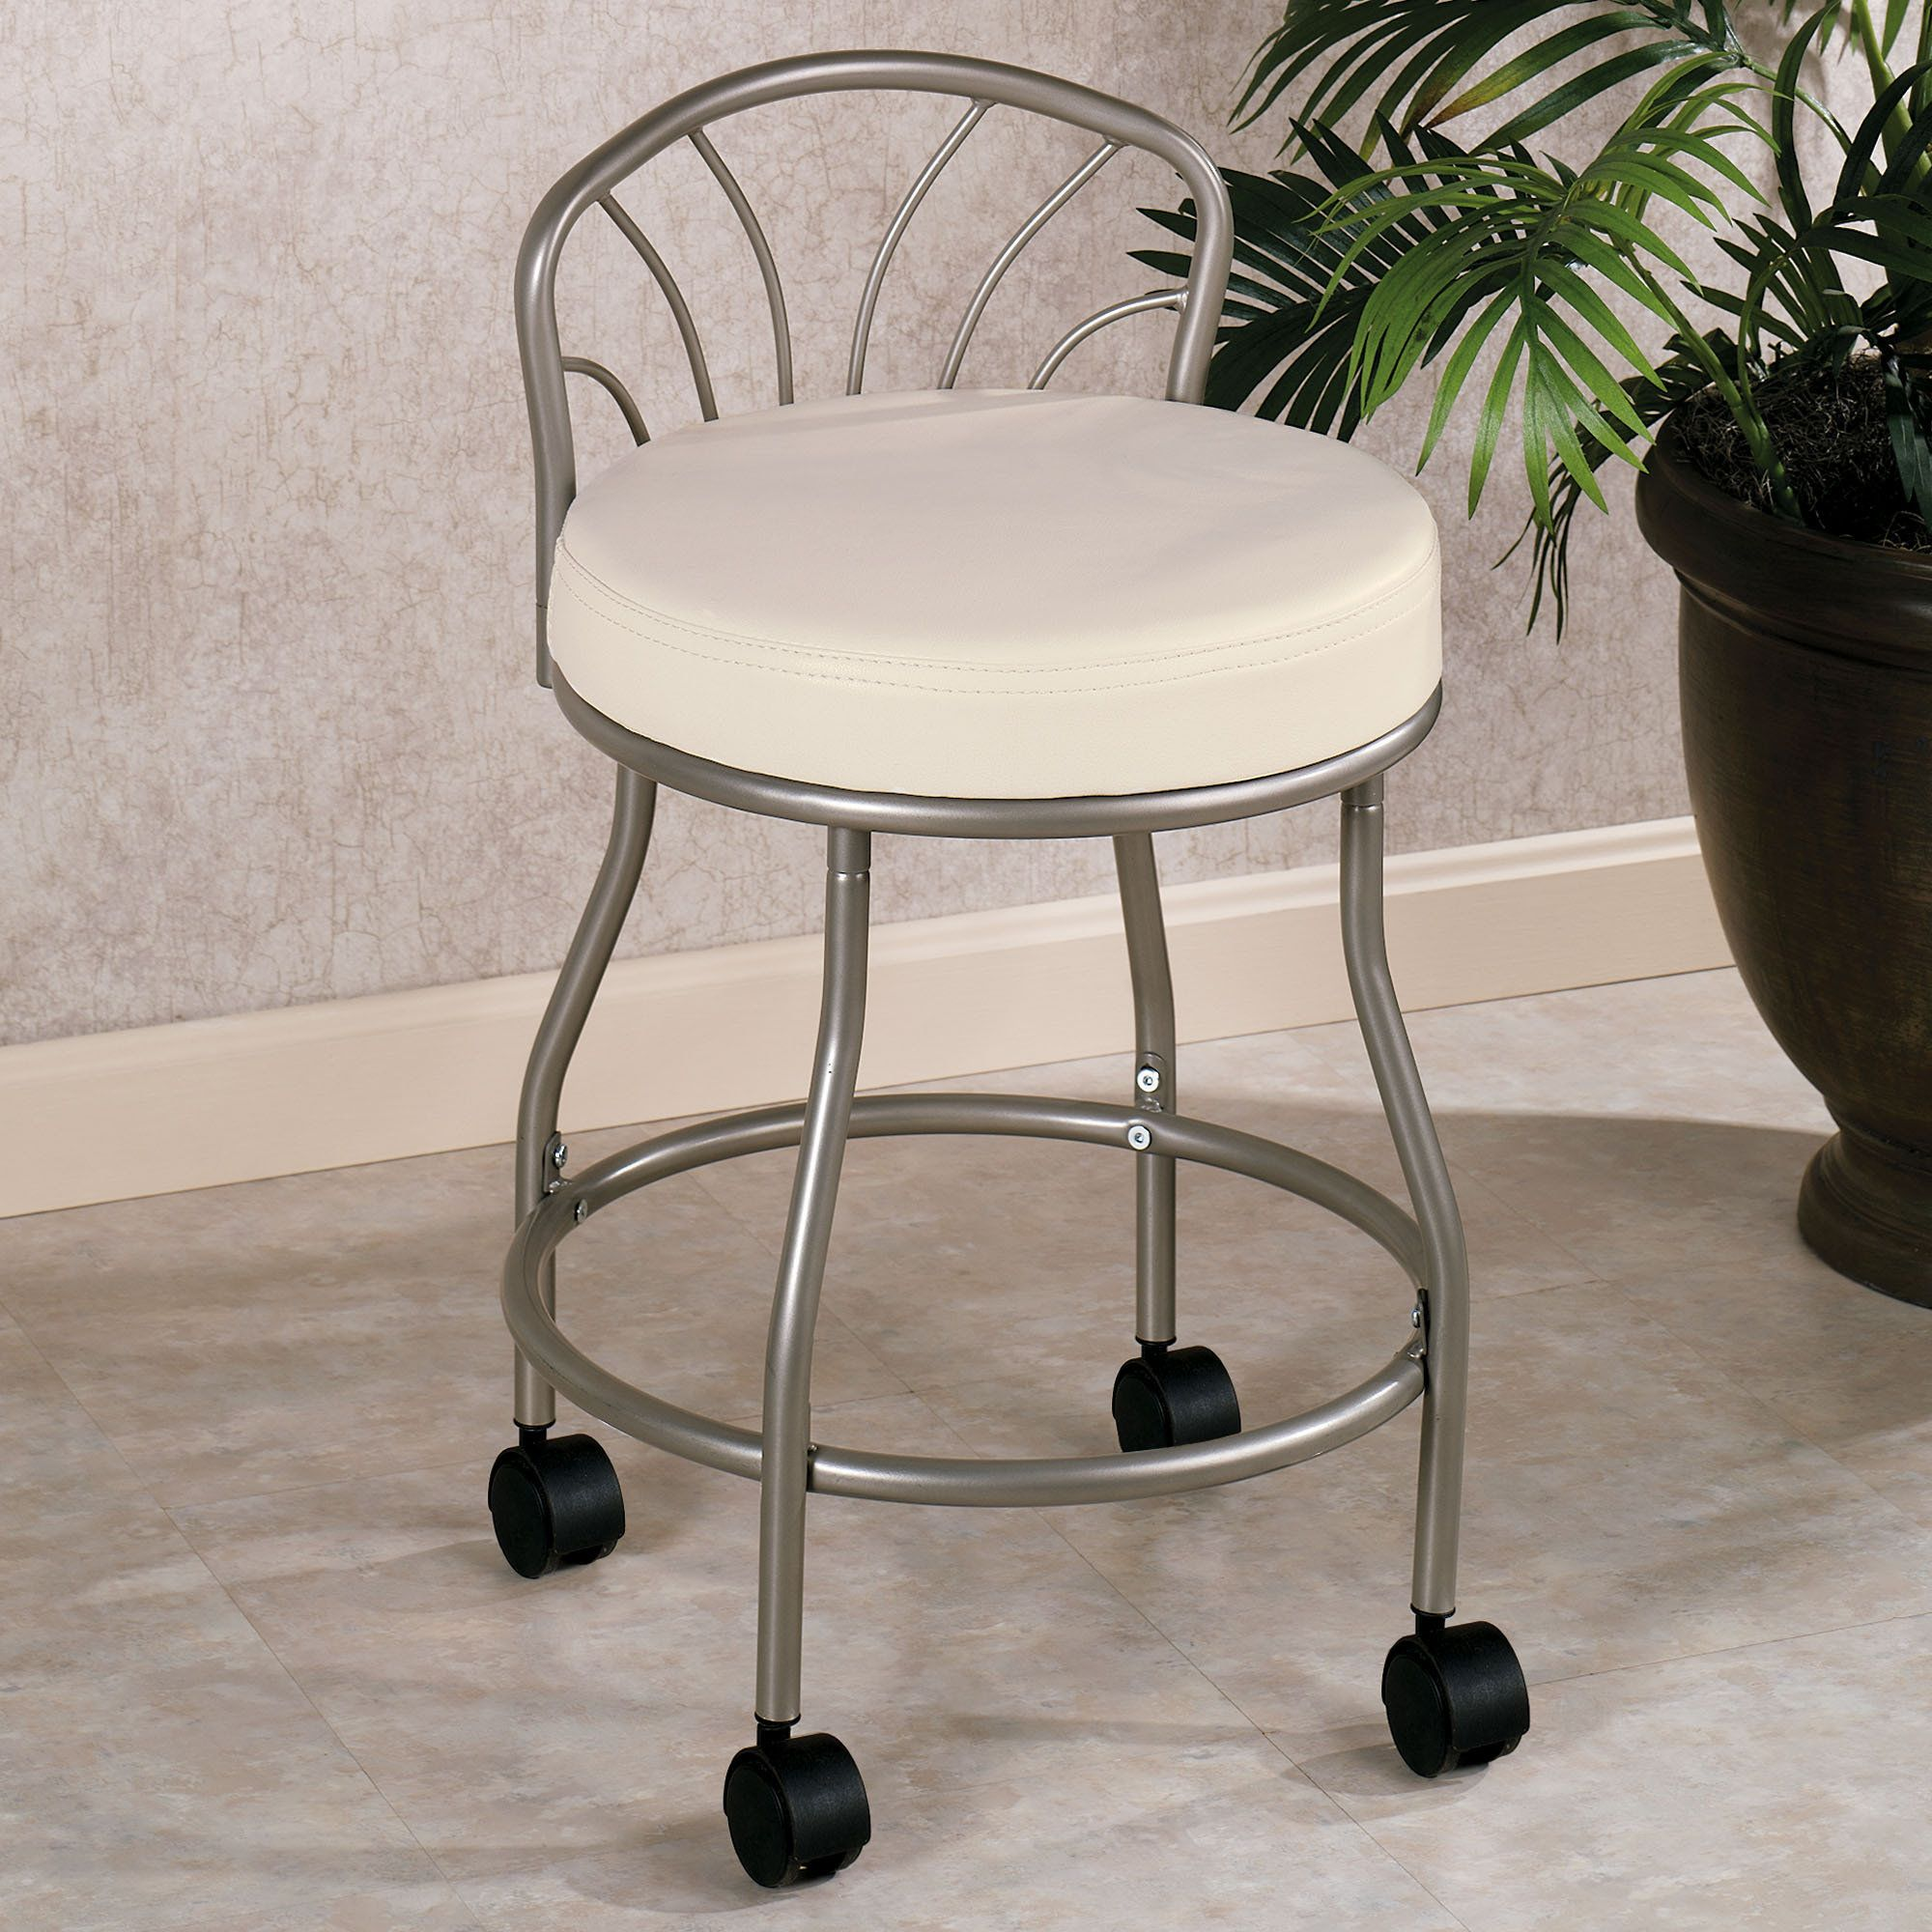 Flare Back Powder Coat Nickel Finish Vanity Chair